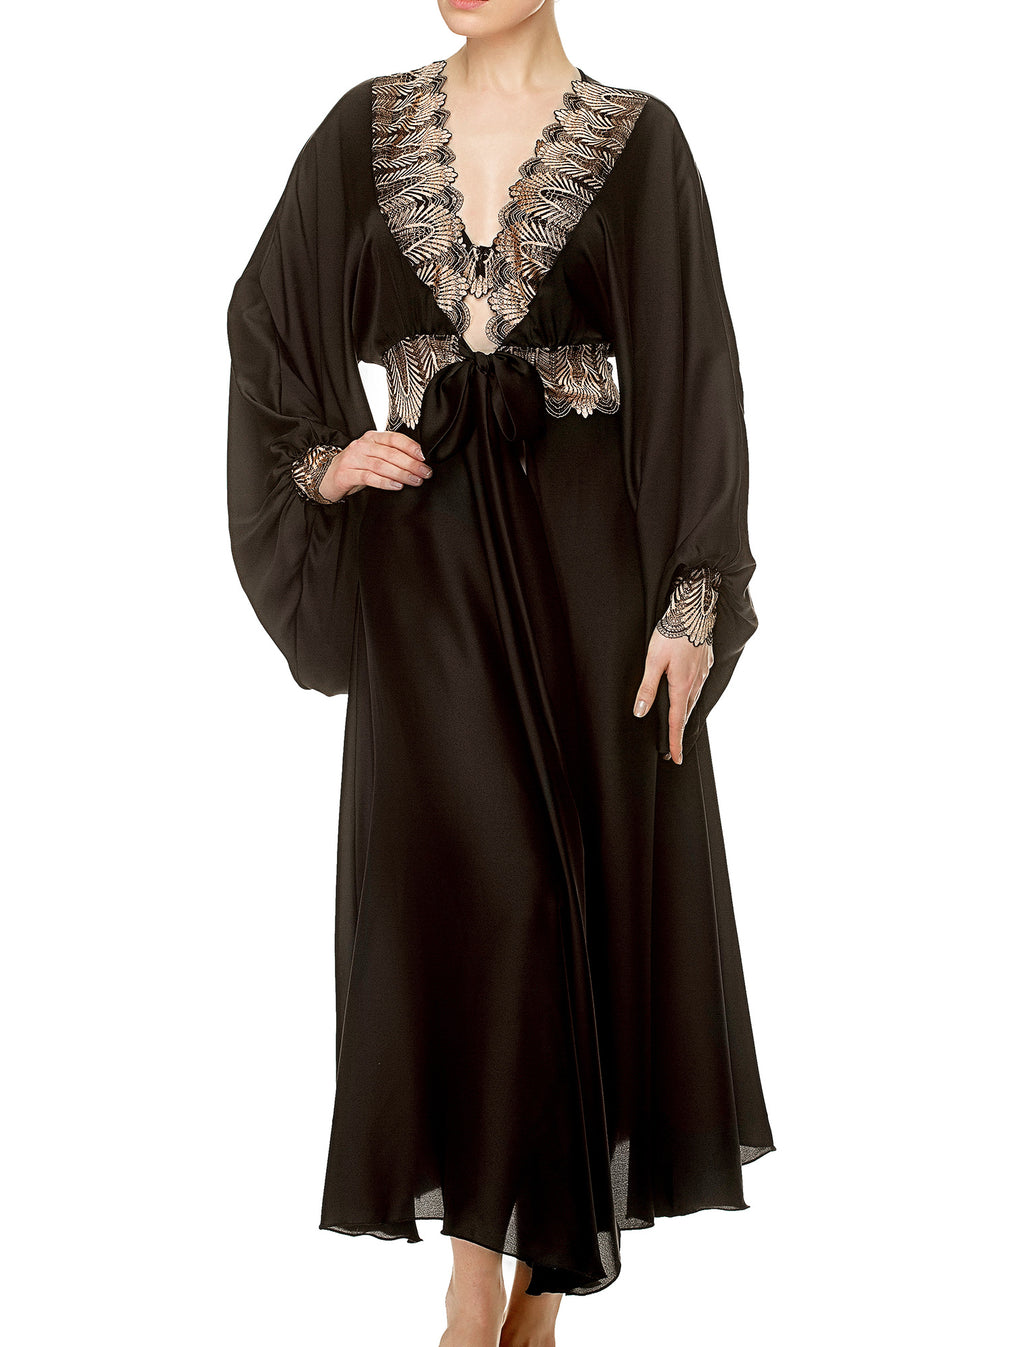 Lauma, Black Satin Dressing Gown, On Model Front, 17J95